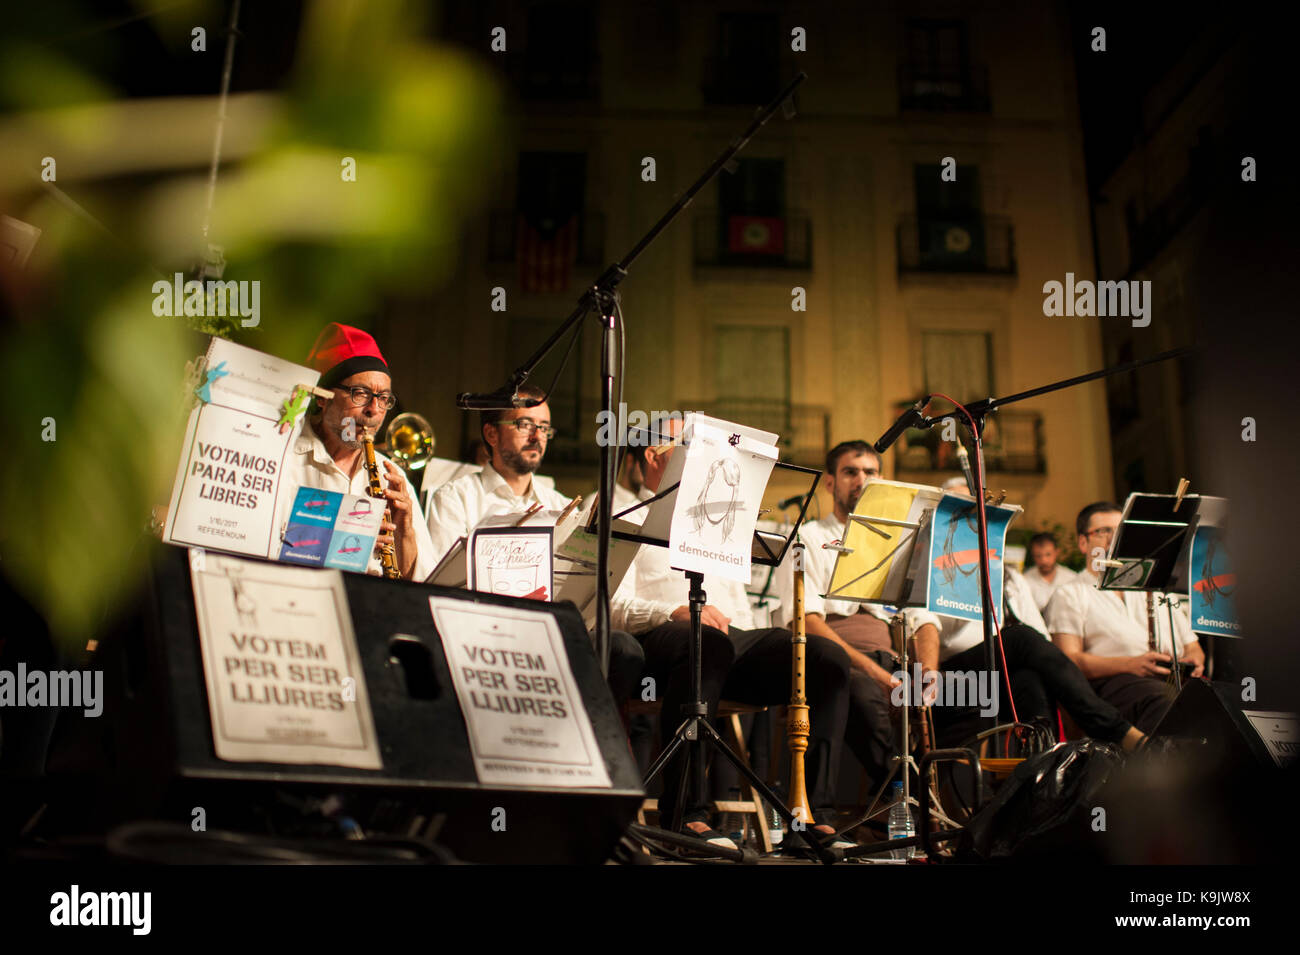 Barcelona, Catalonia. 22nd Sep, 2017. Spain. September 22th, 2017. Members of the orchestra of musicians who enliven - Stock Image